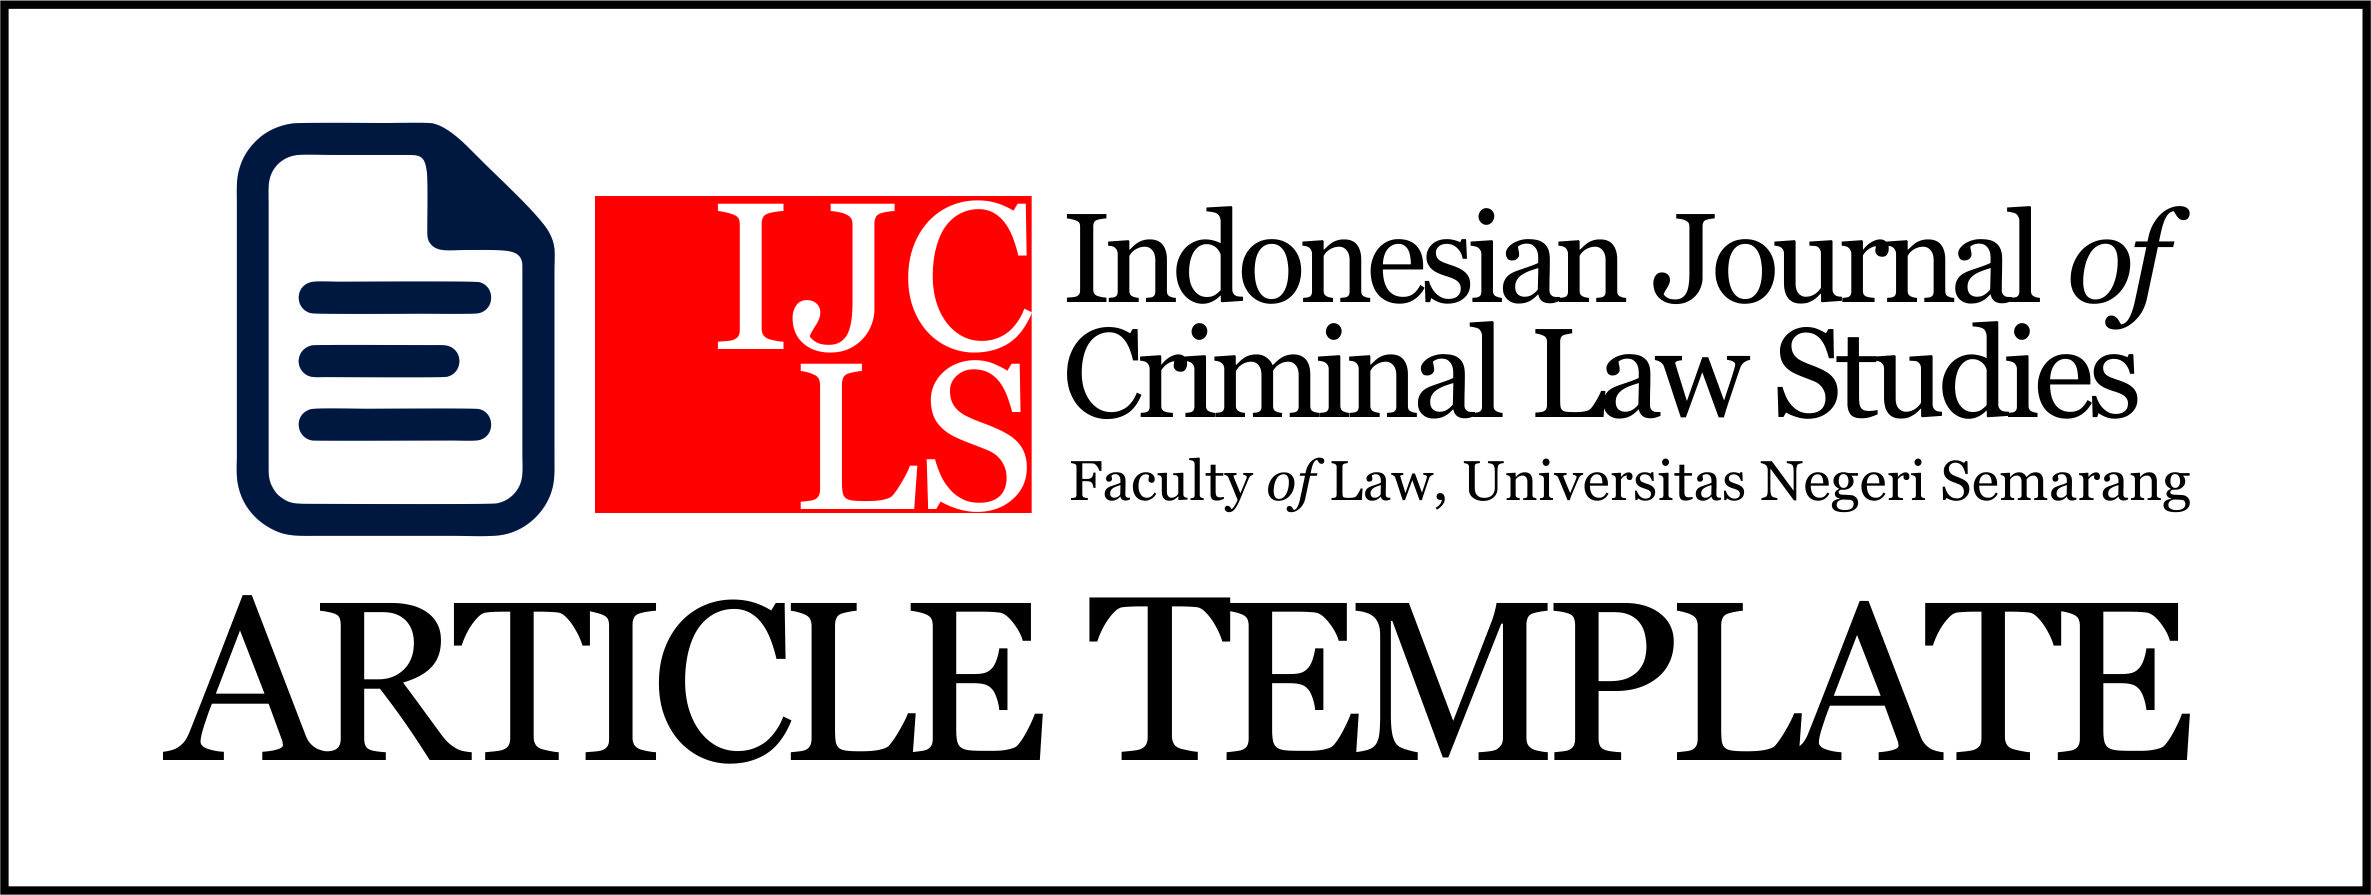 Urgency Of Regulation Reform Of Bribery Offence At Private Sector In Indonesia Umari Ijcls Indonesian Journal Of Criminal Law Studies